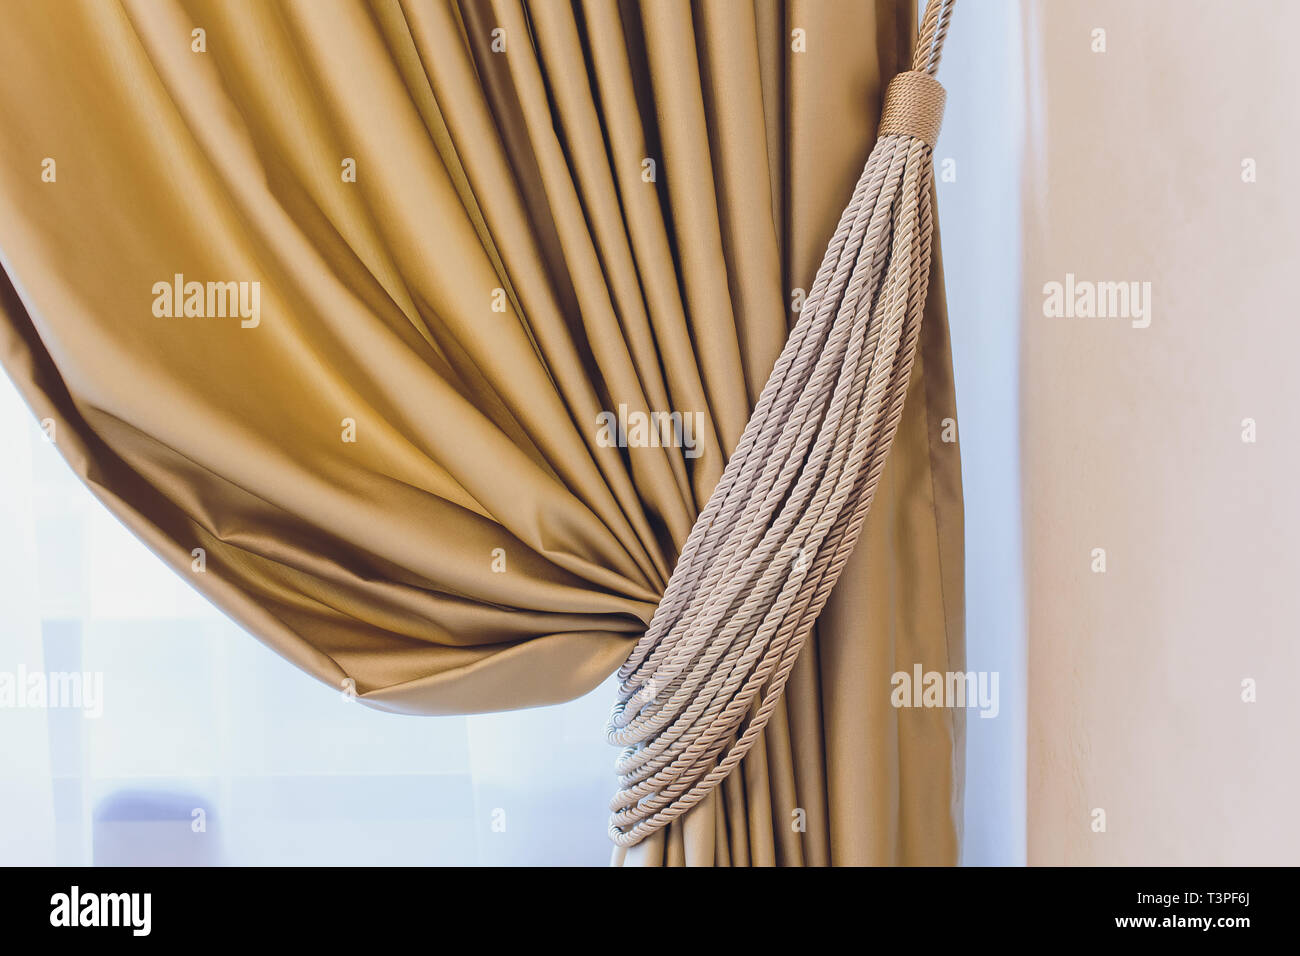 Holder for room curtains. Fragment photo curtain, interior detail, curtain detail close up. - Stock Image